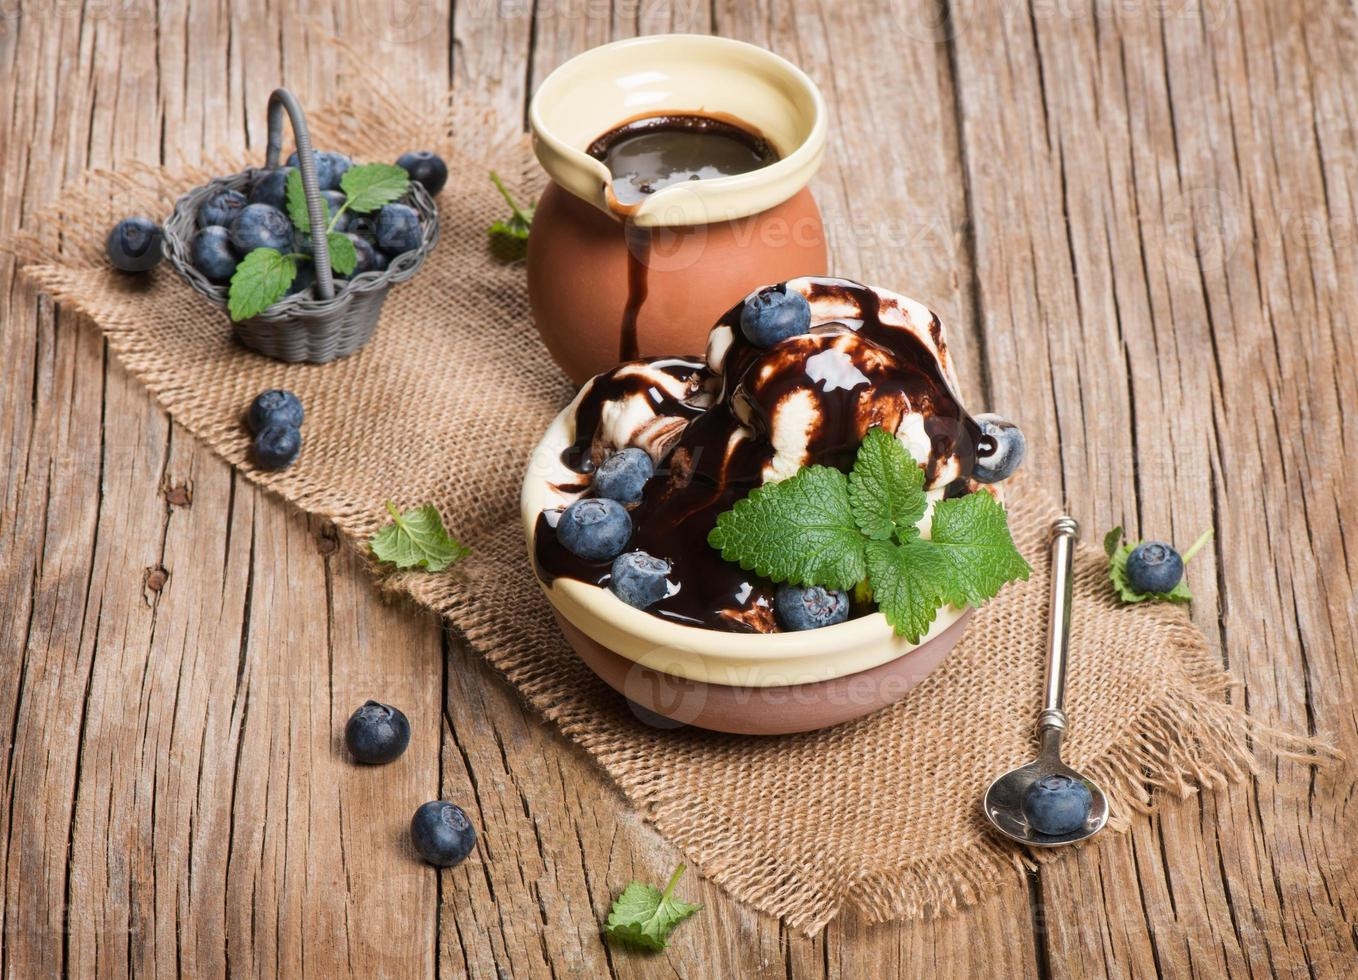 ice cream with berries on wooden background photo